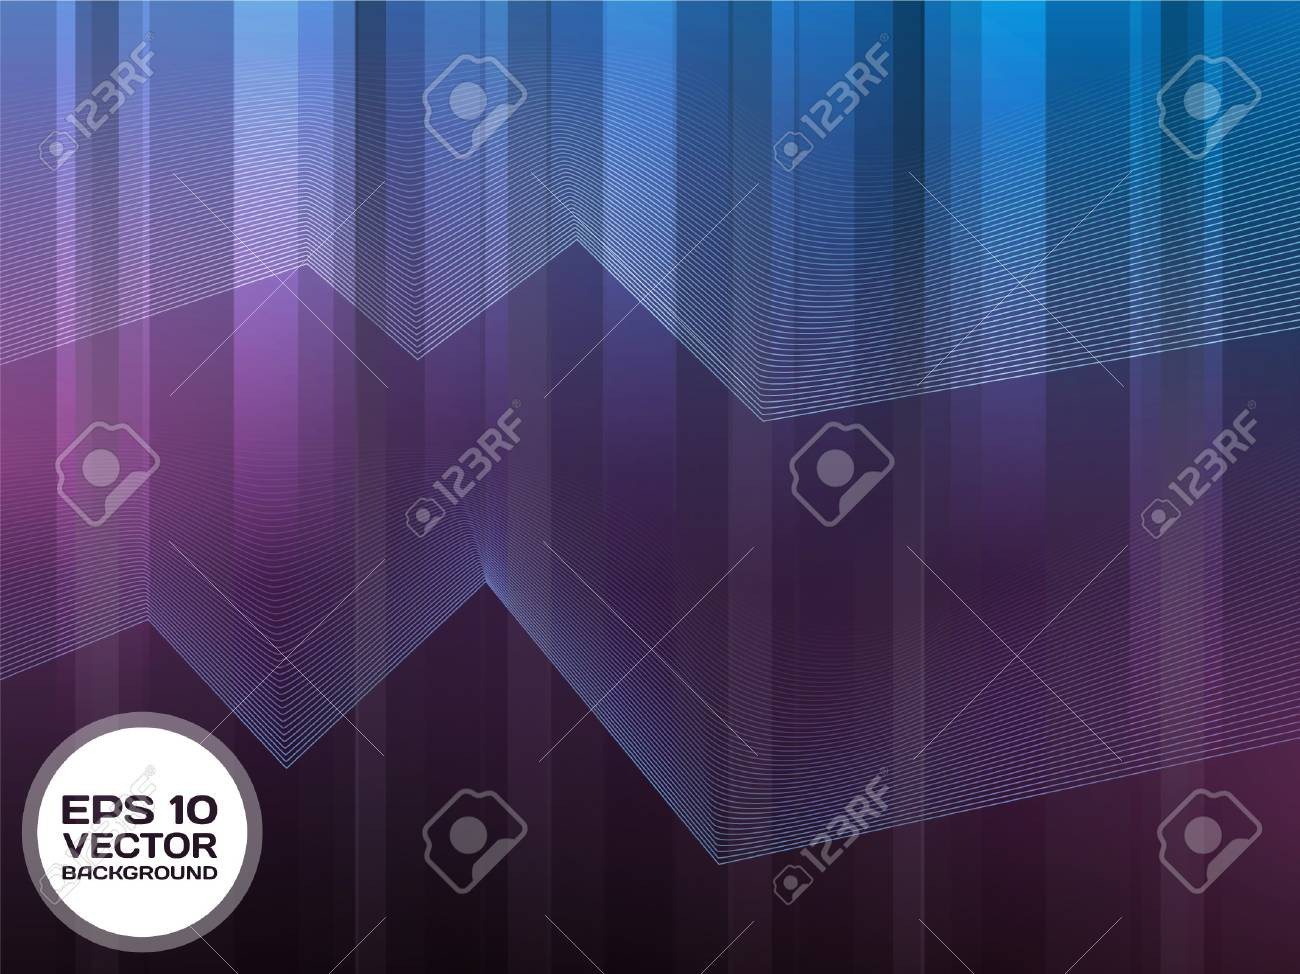 Geometric Abstract Background Stock Vector - 16872859